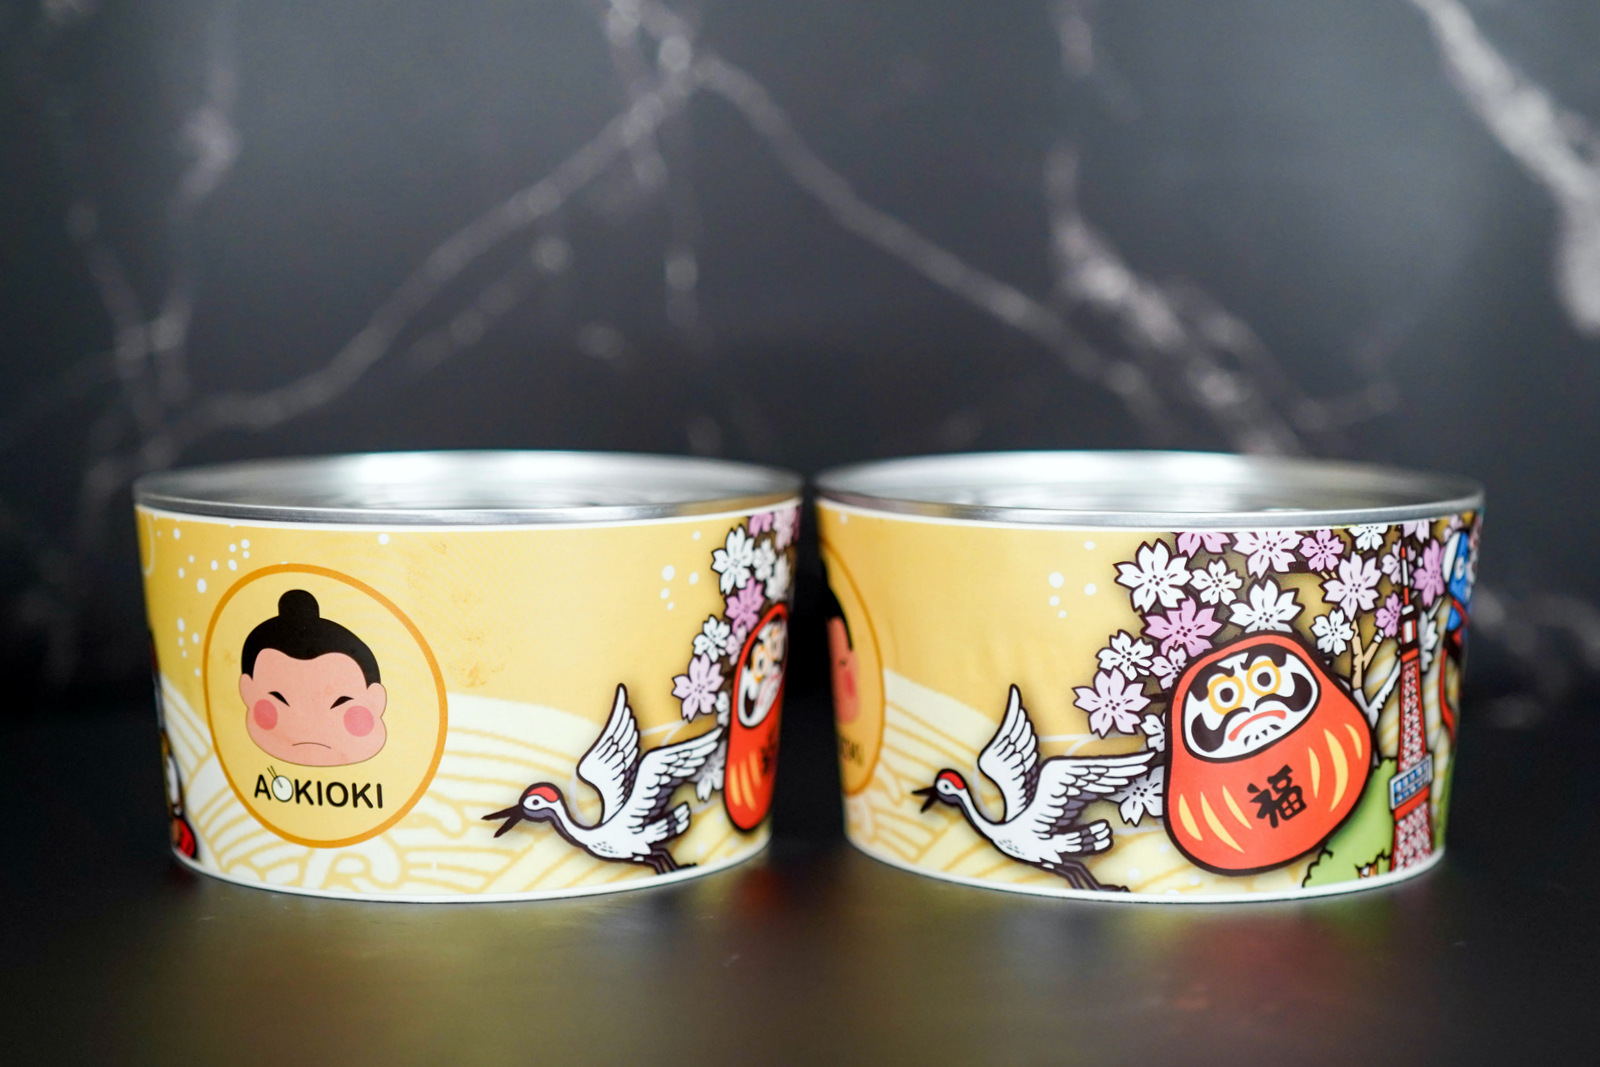 Aokioki: Japanese donburi delivery with a tinned twist